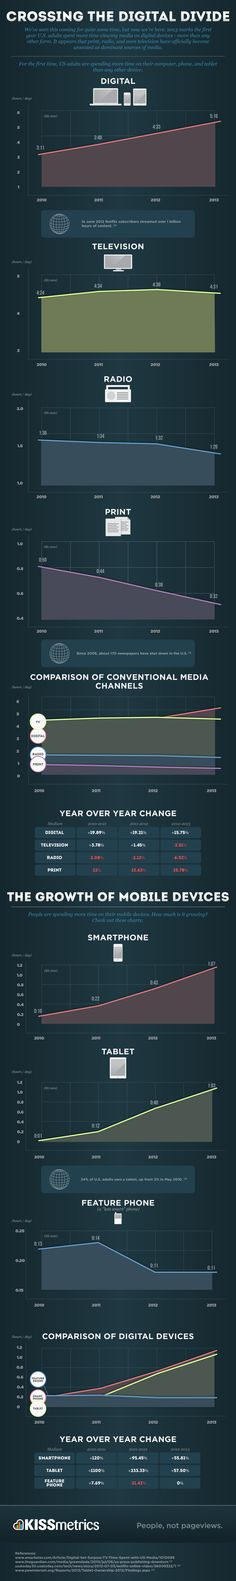 Crossing The Digital Divide   2013 will be remembered as the year in which print, radio and television officially lost the throne as the dominant sources of media.